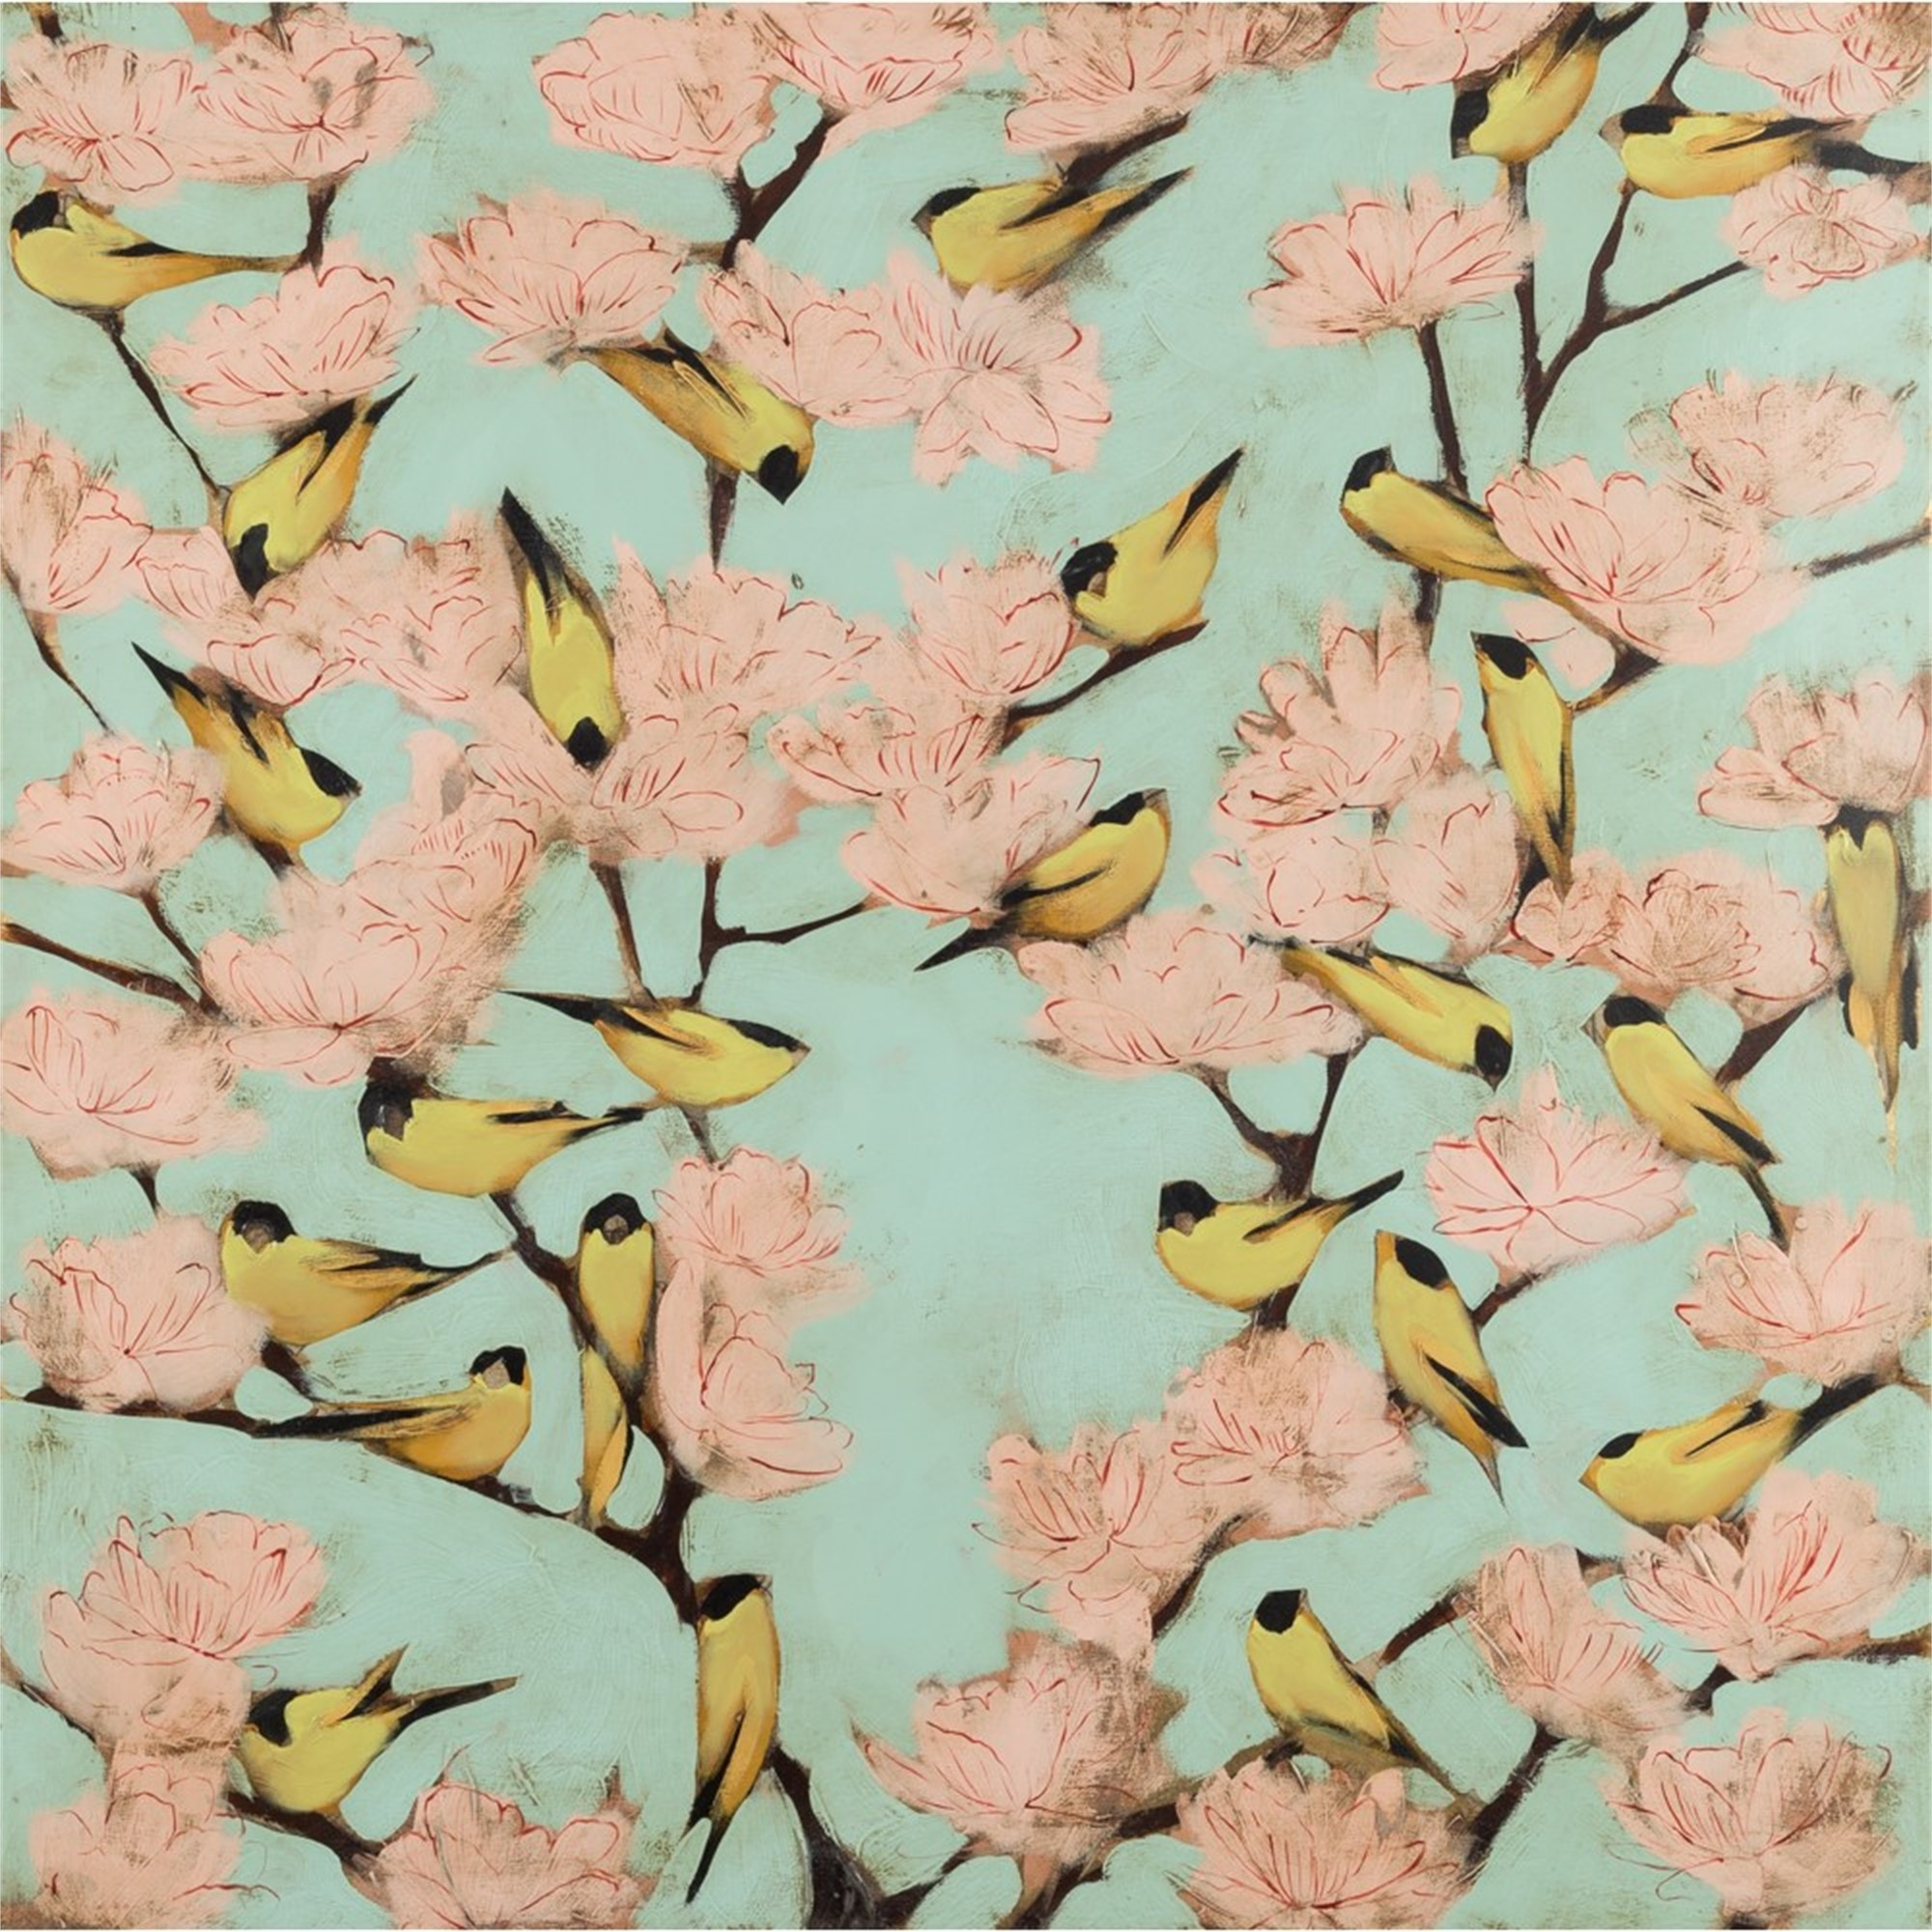 Blossoms and Finches by Joseph Bradley